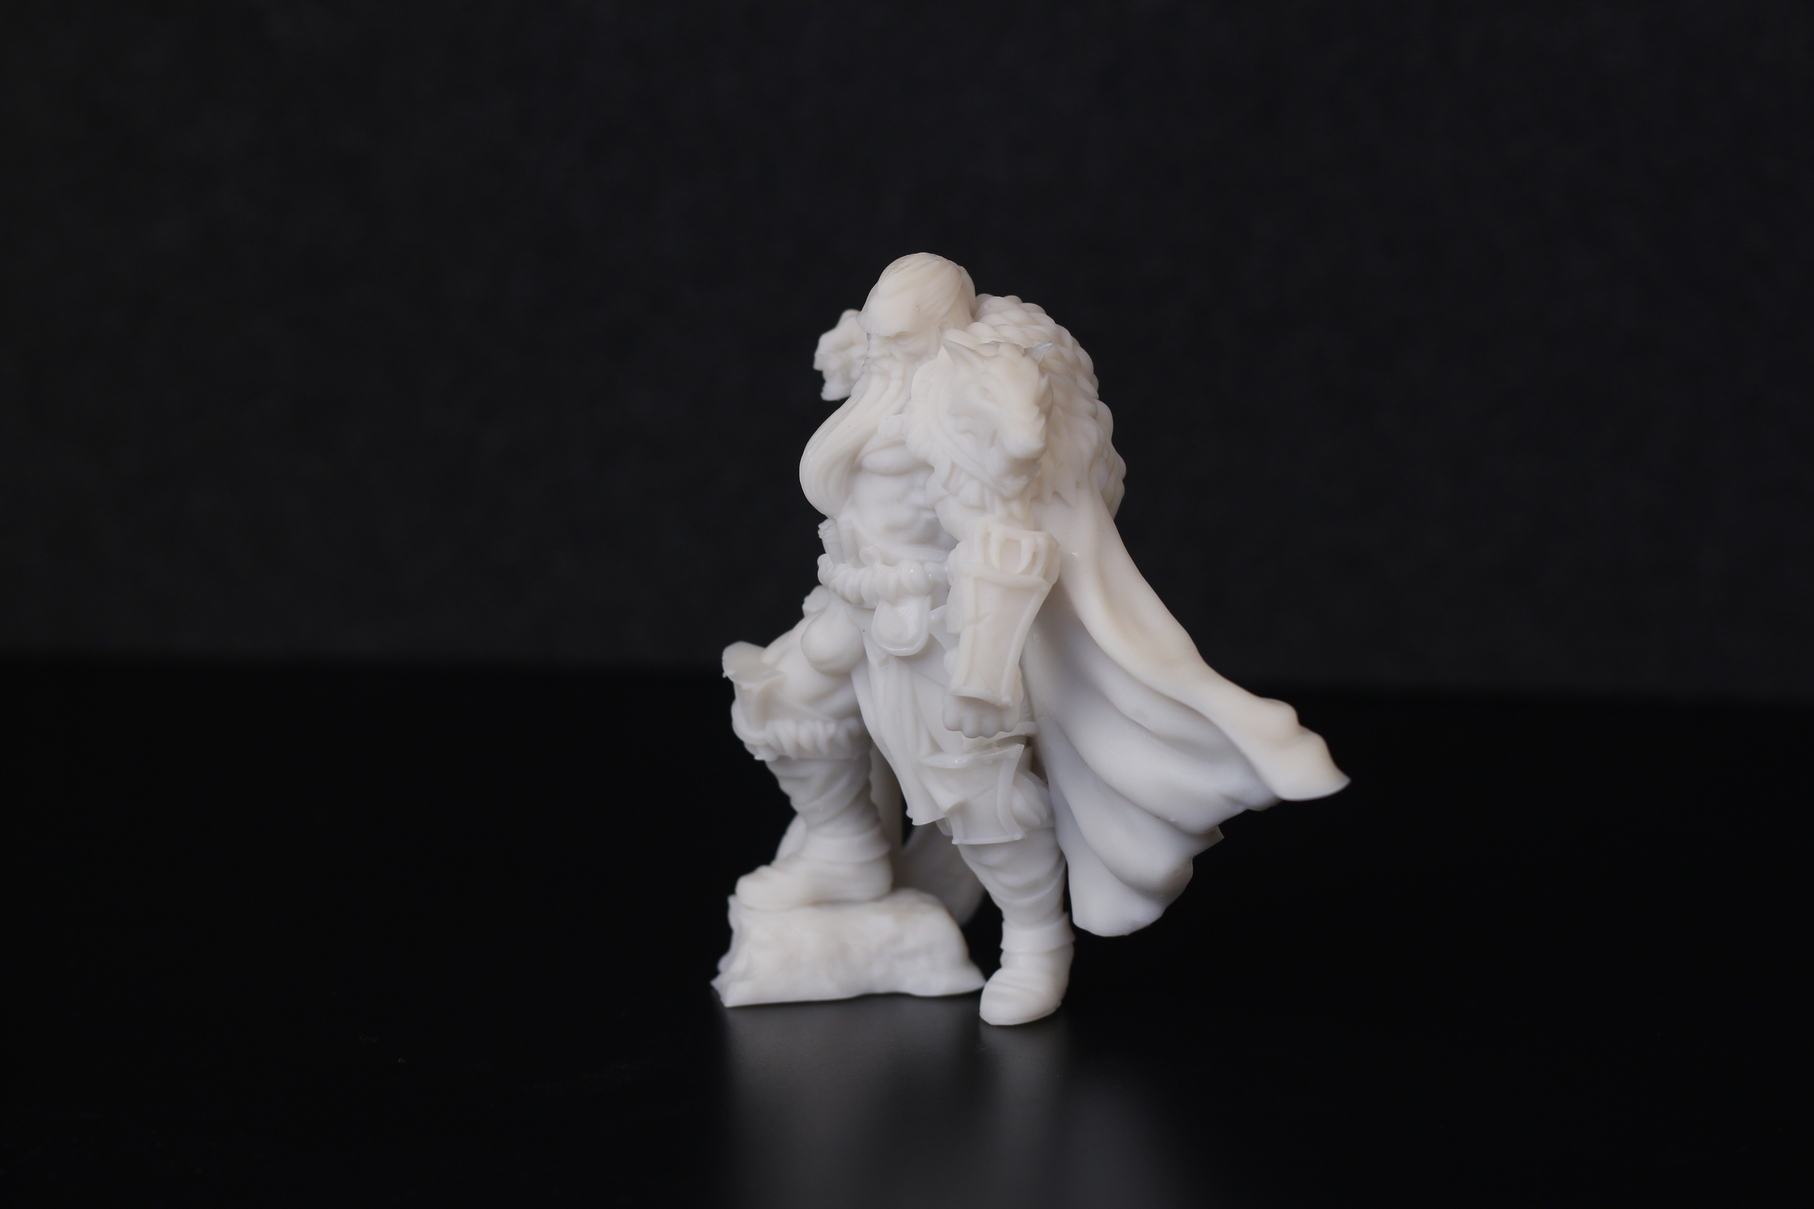 Barbarian Chieftain printed on Anycubic Photon Mono X 8 | Anycubic Photon Mono X Review - Large Format Resin 3D Printer